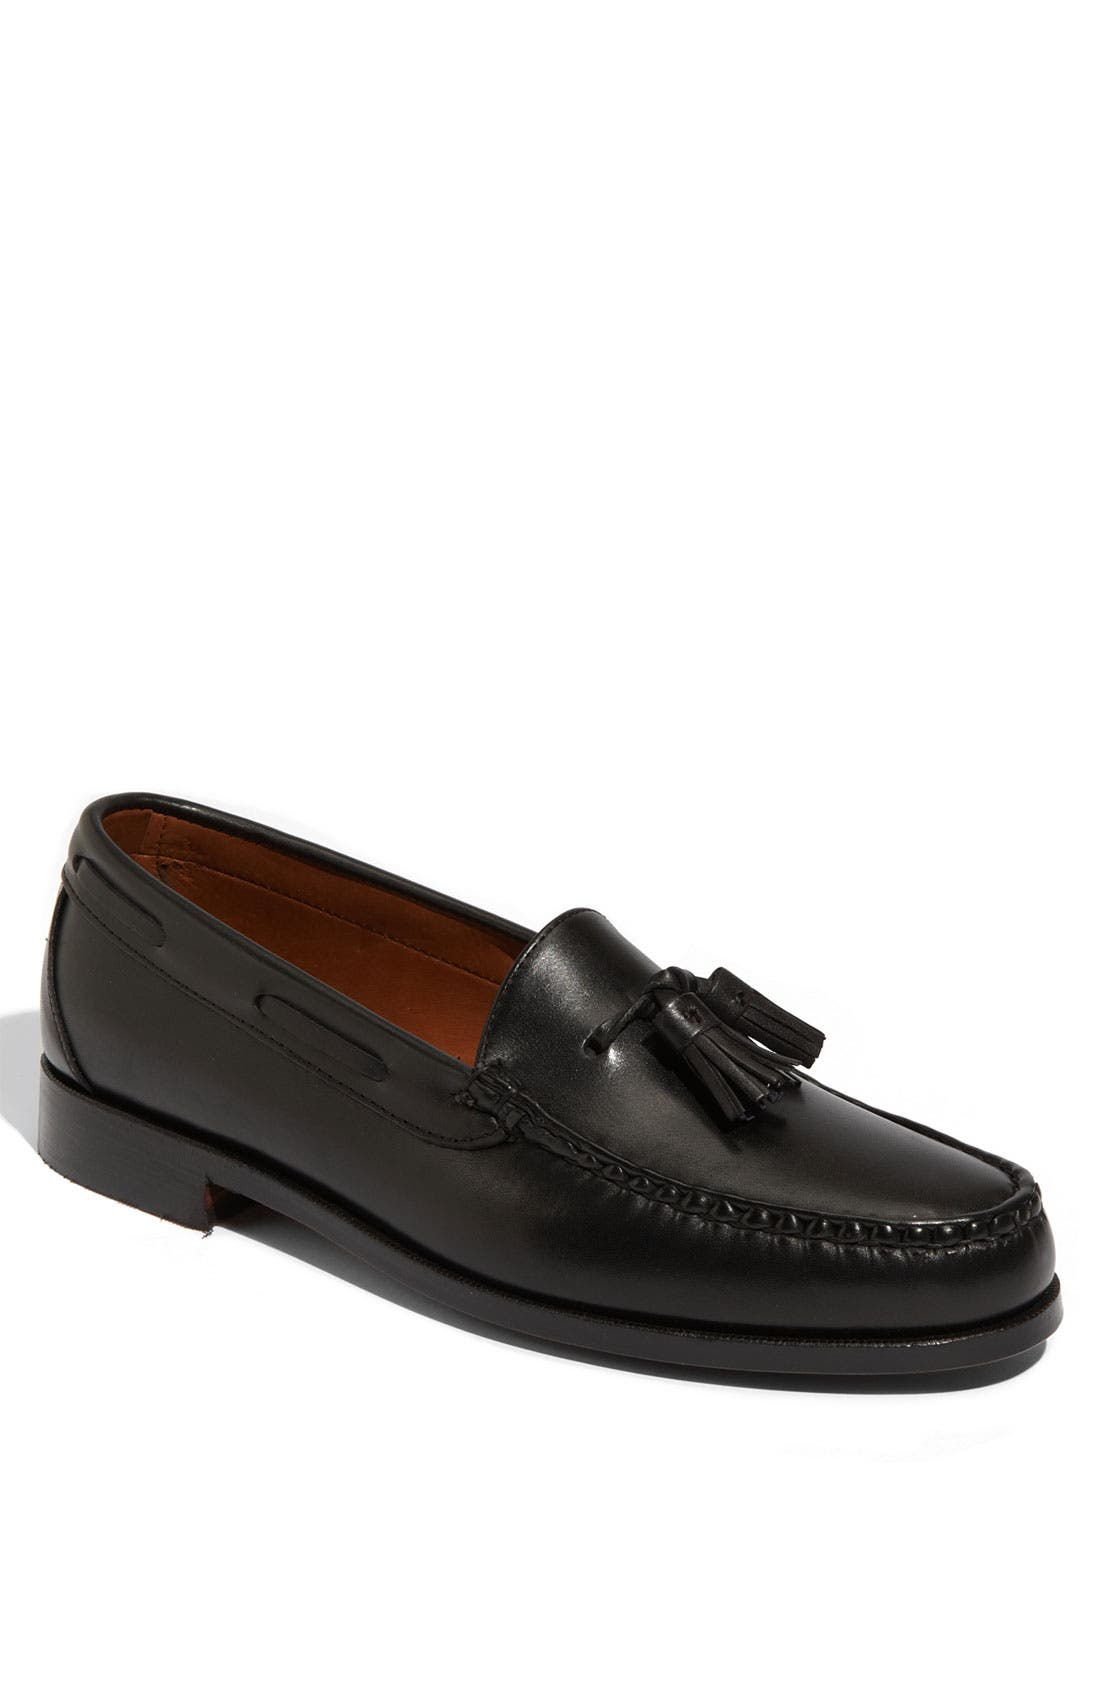 Alternate Image 1 Selected - Allen Edmonds 'Naples' Loafer